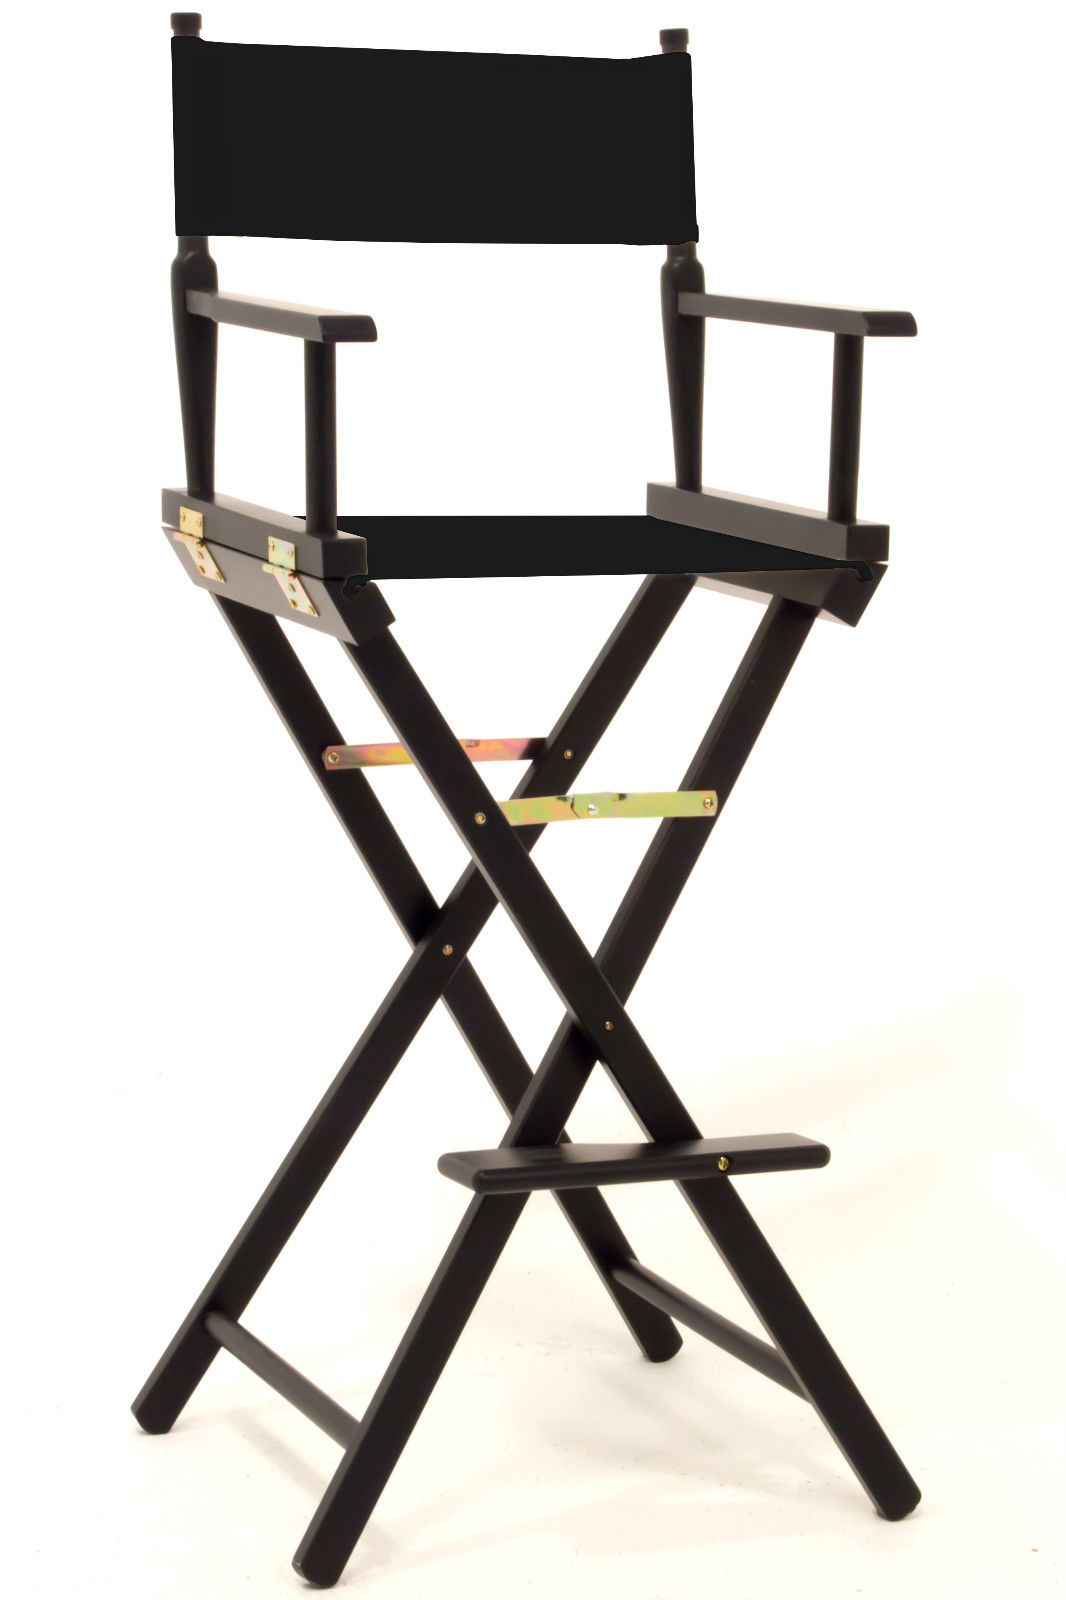 counter height directors chair stool model hollywood themed props for parties and events